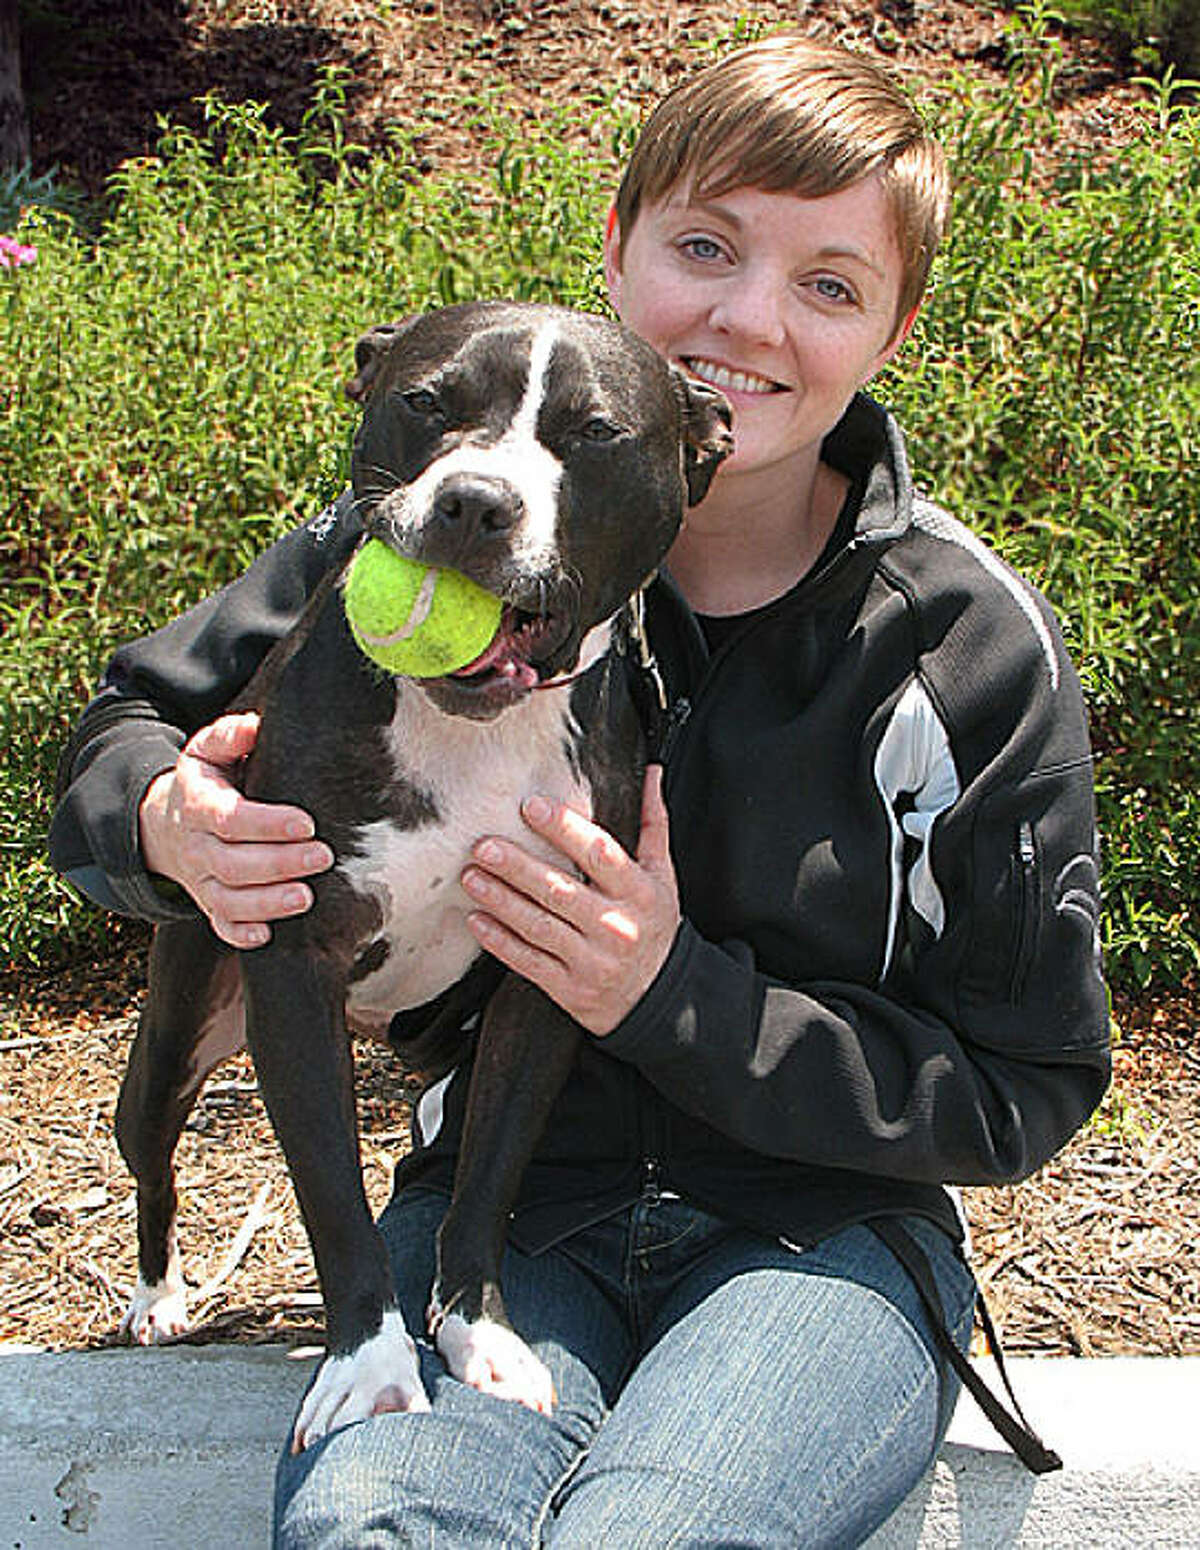 Uba is another dog rescued from Michael Vick's dogfighting ring. He was adopted by Letti deLittle and Jamel Freeman of San Francisco.